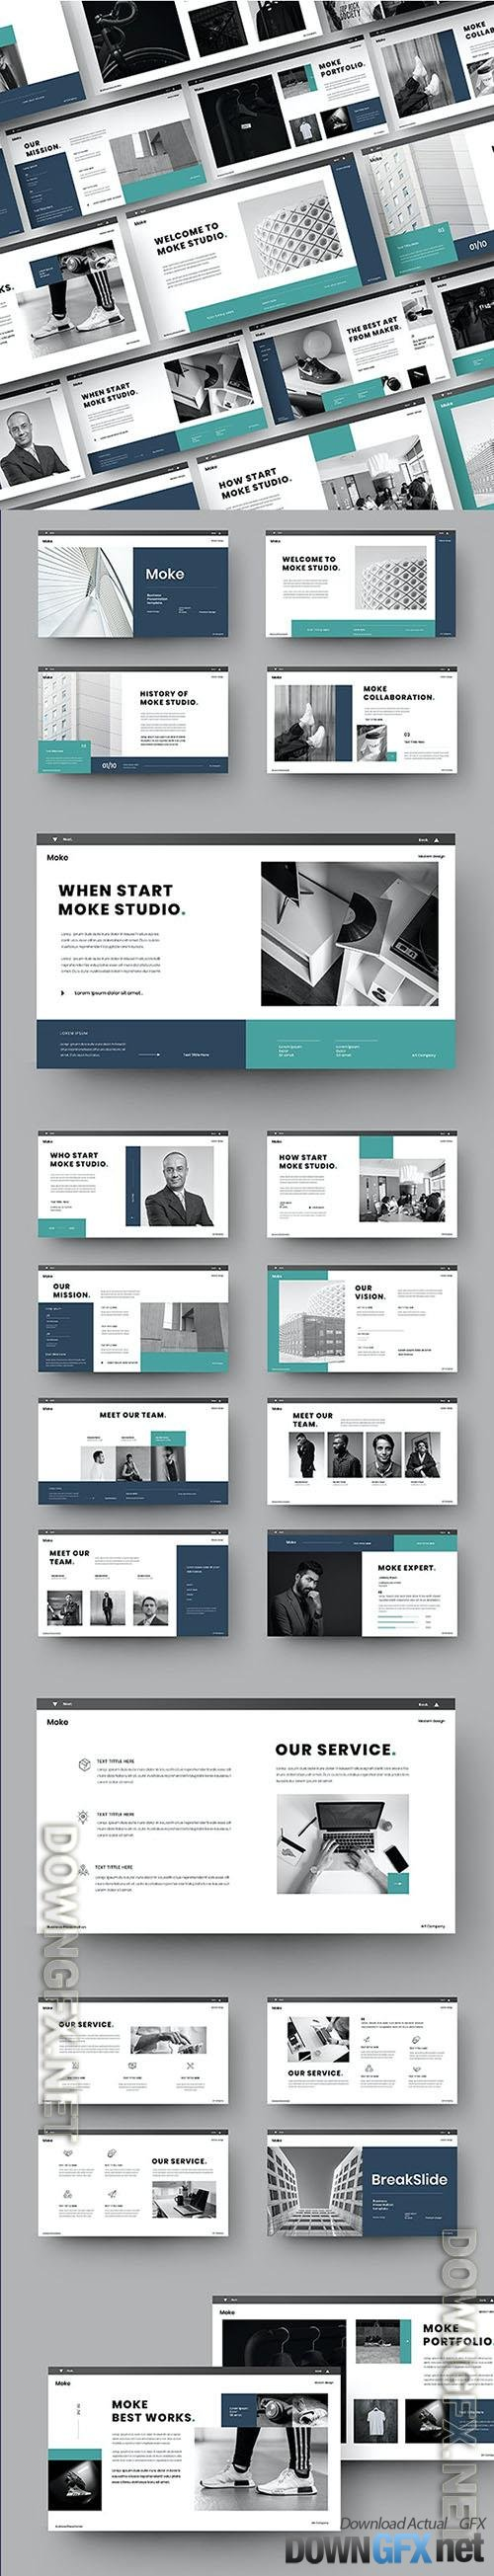 Moke - Business Powerpoint, Keynote and Google Slides Template